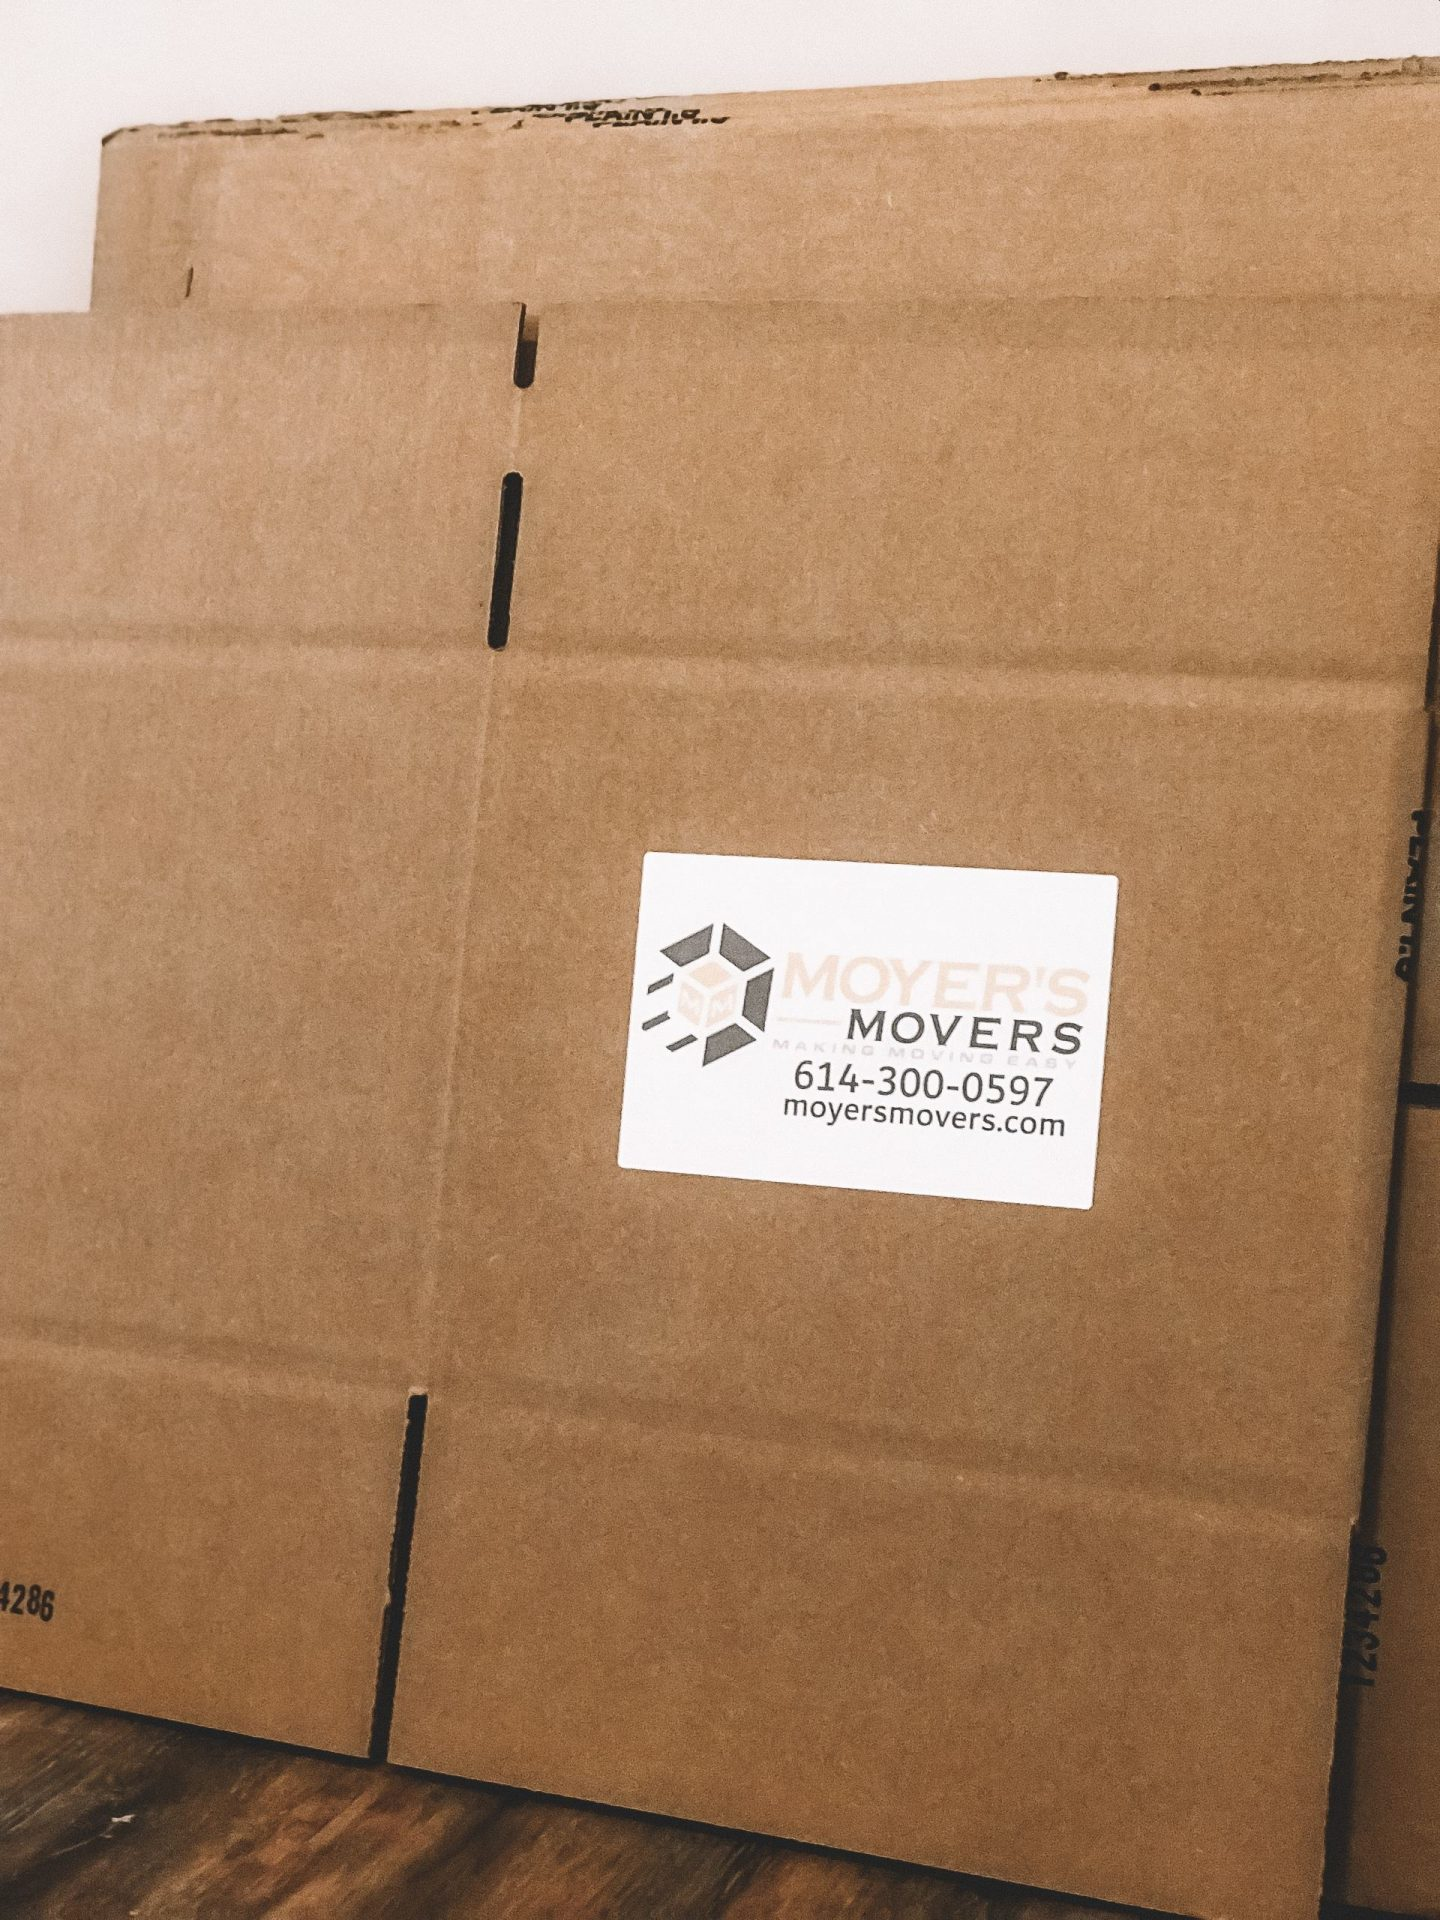 Hassle-Free, Top-Quality Moving Experience